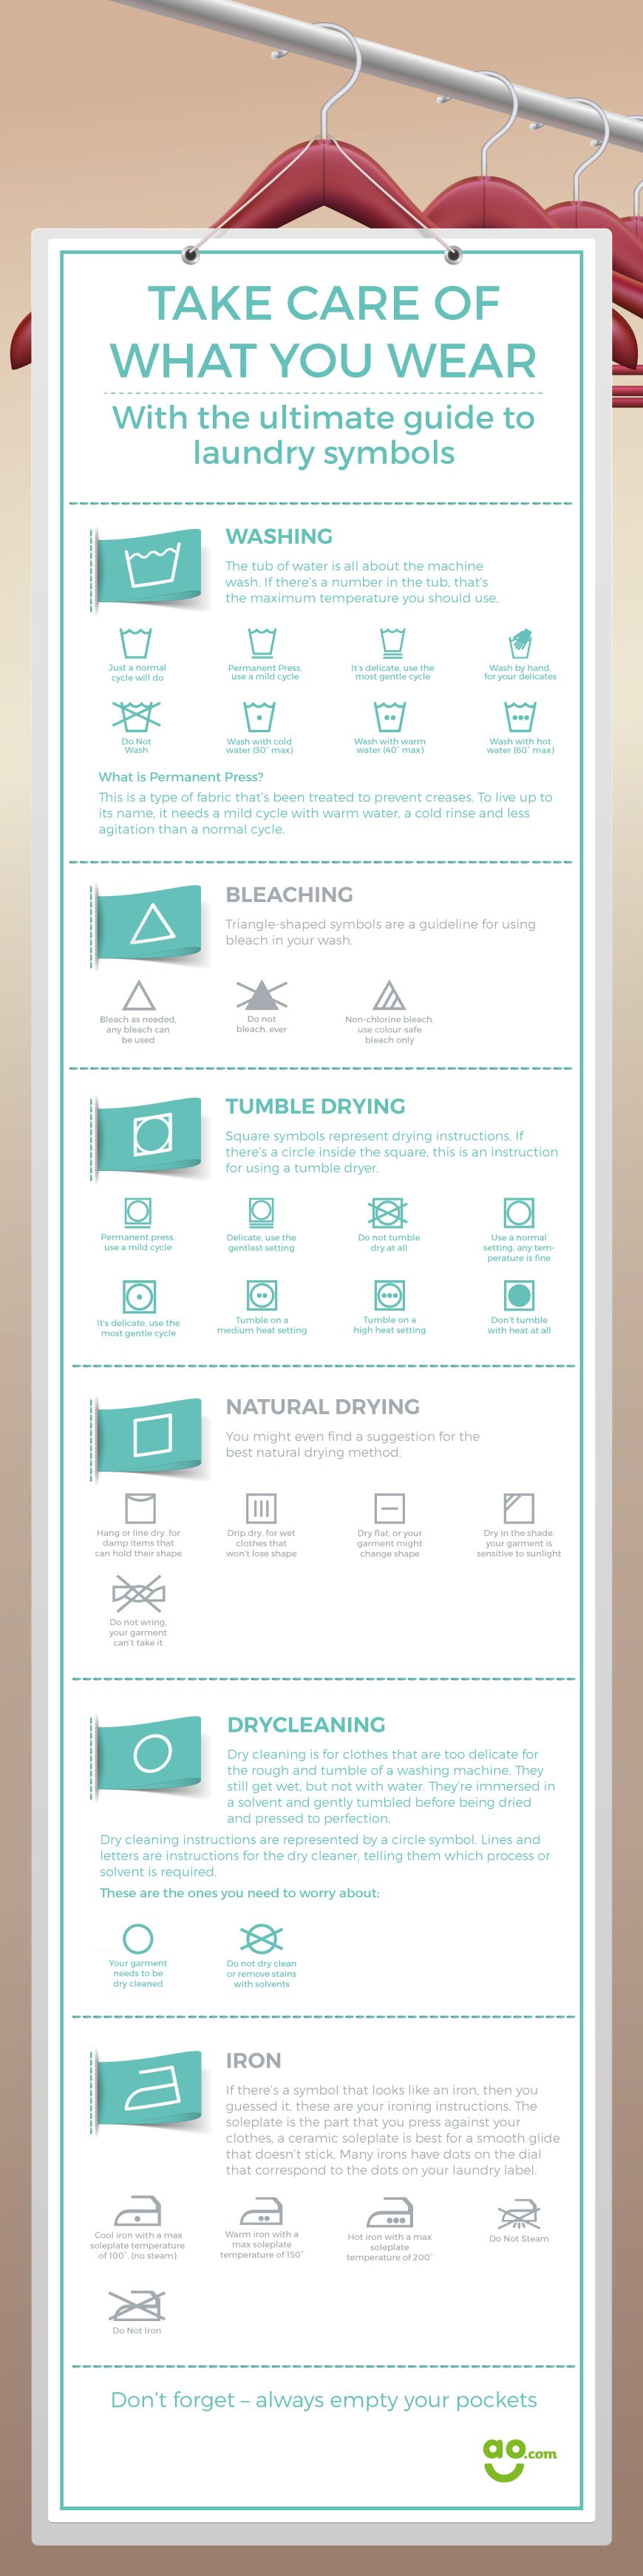 Take care of what you wear with the ultimate guide to laundry take care of what you wear with the ultimate guide to laundry symbols biocorpaavc Gallery